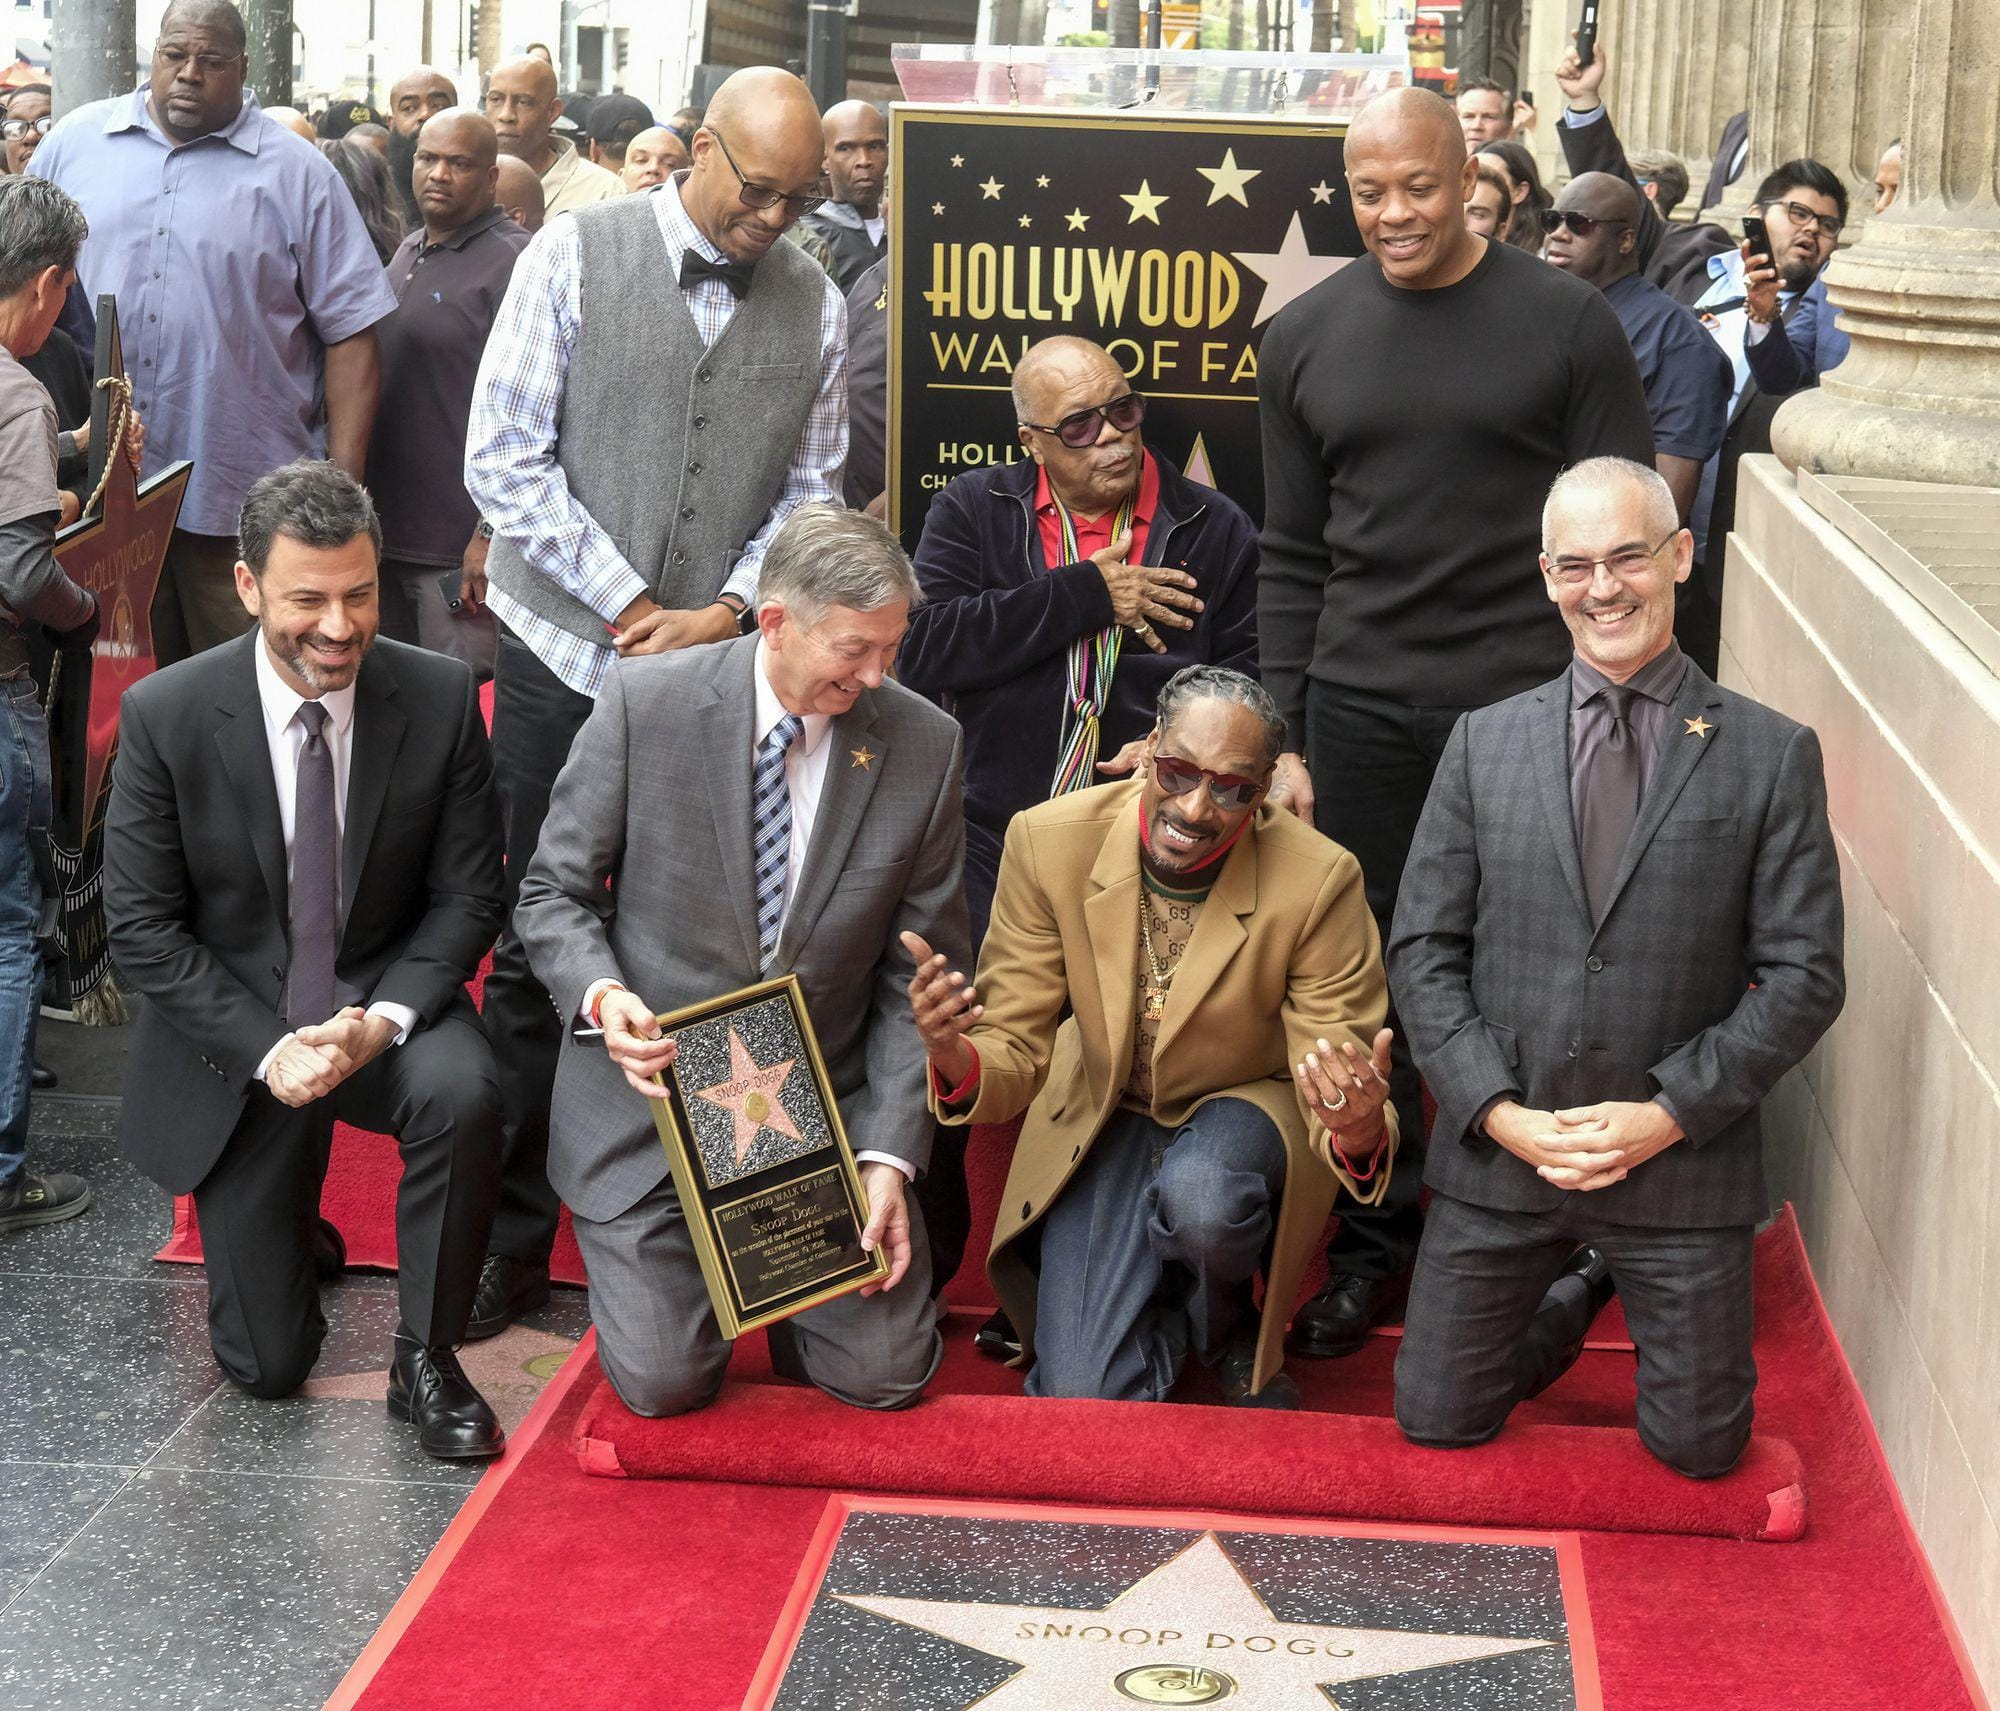 Snoop Dogg Receives Star On Hollywood Walk Of Fame